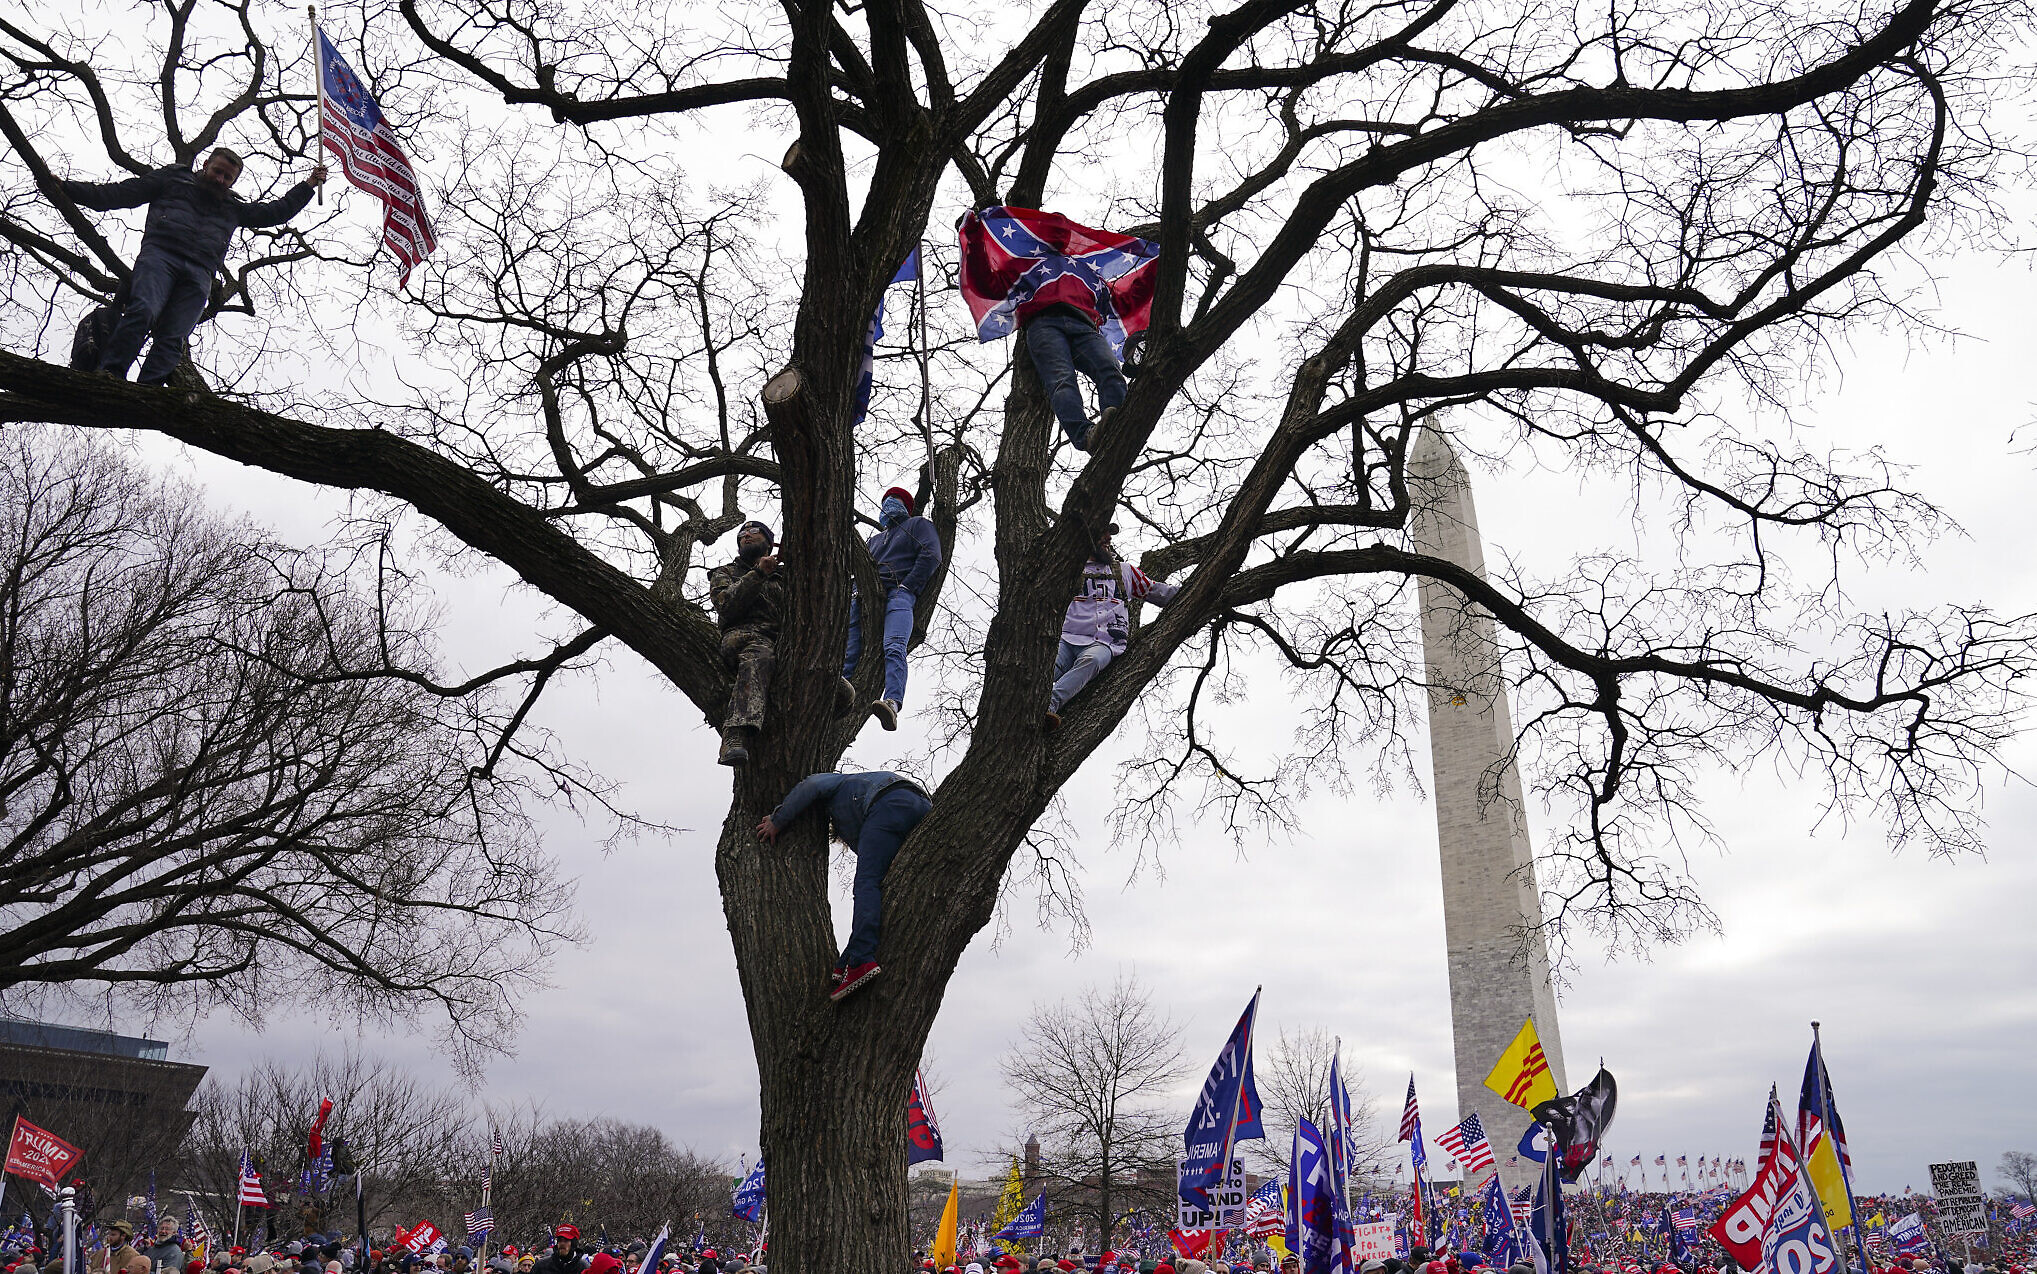 Supporters of US President Donald Trump participate in a rally in Washington